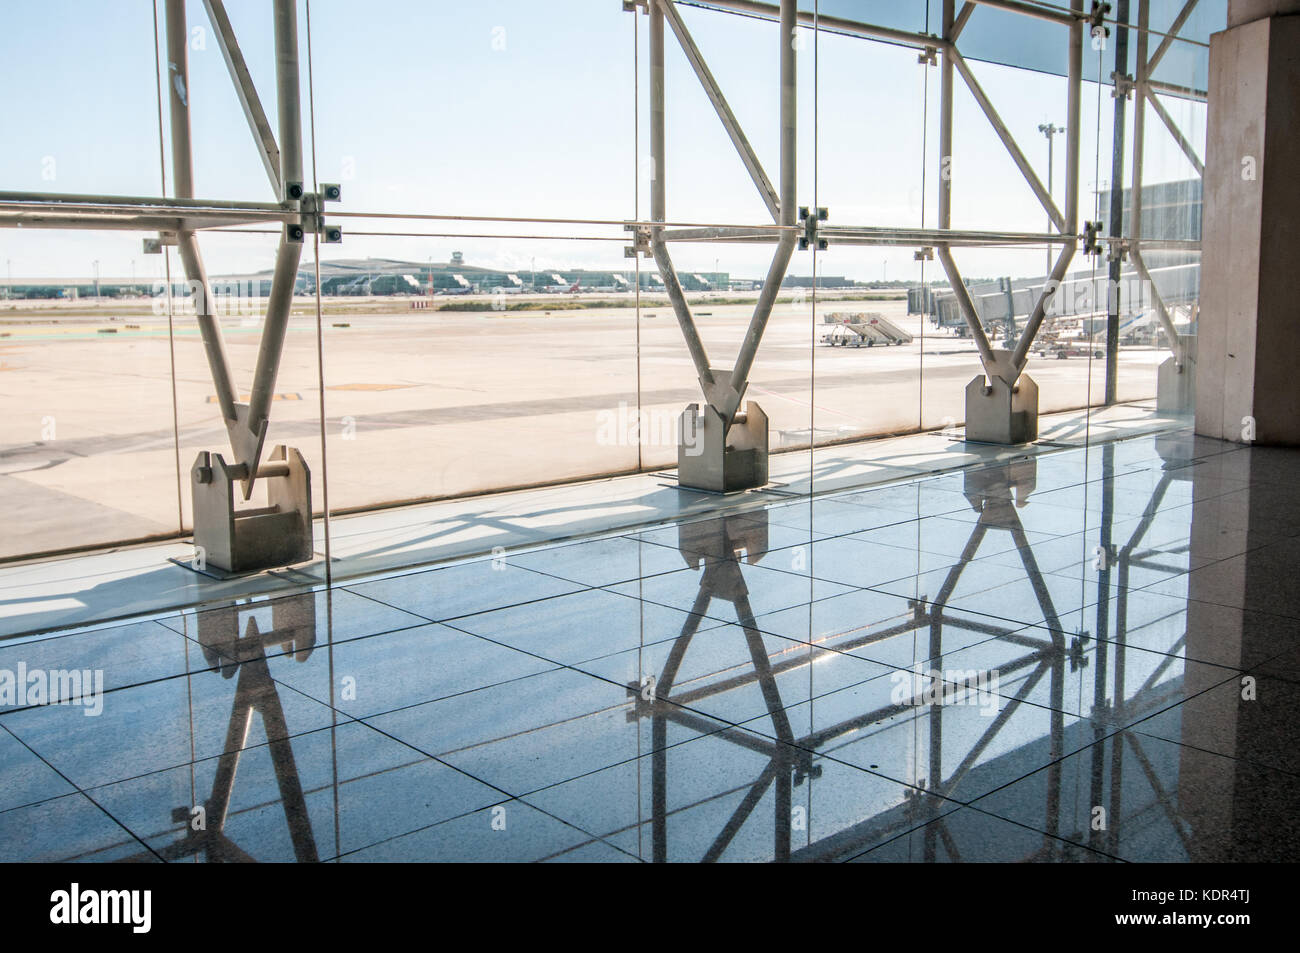 view of the anchors of the structue and the landing track trough the window, Barcelona Airport, Terminal 2 - Stock Image